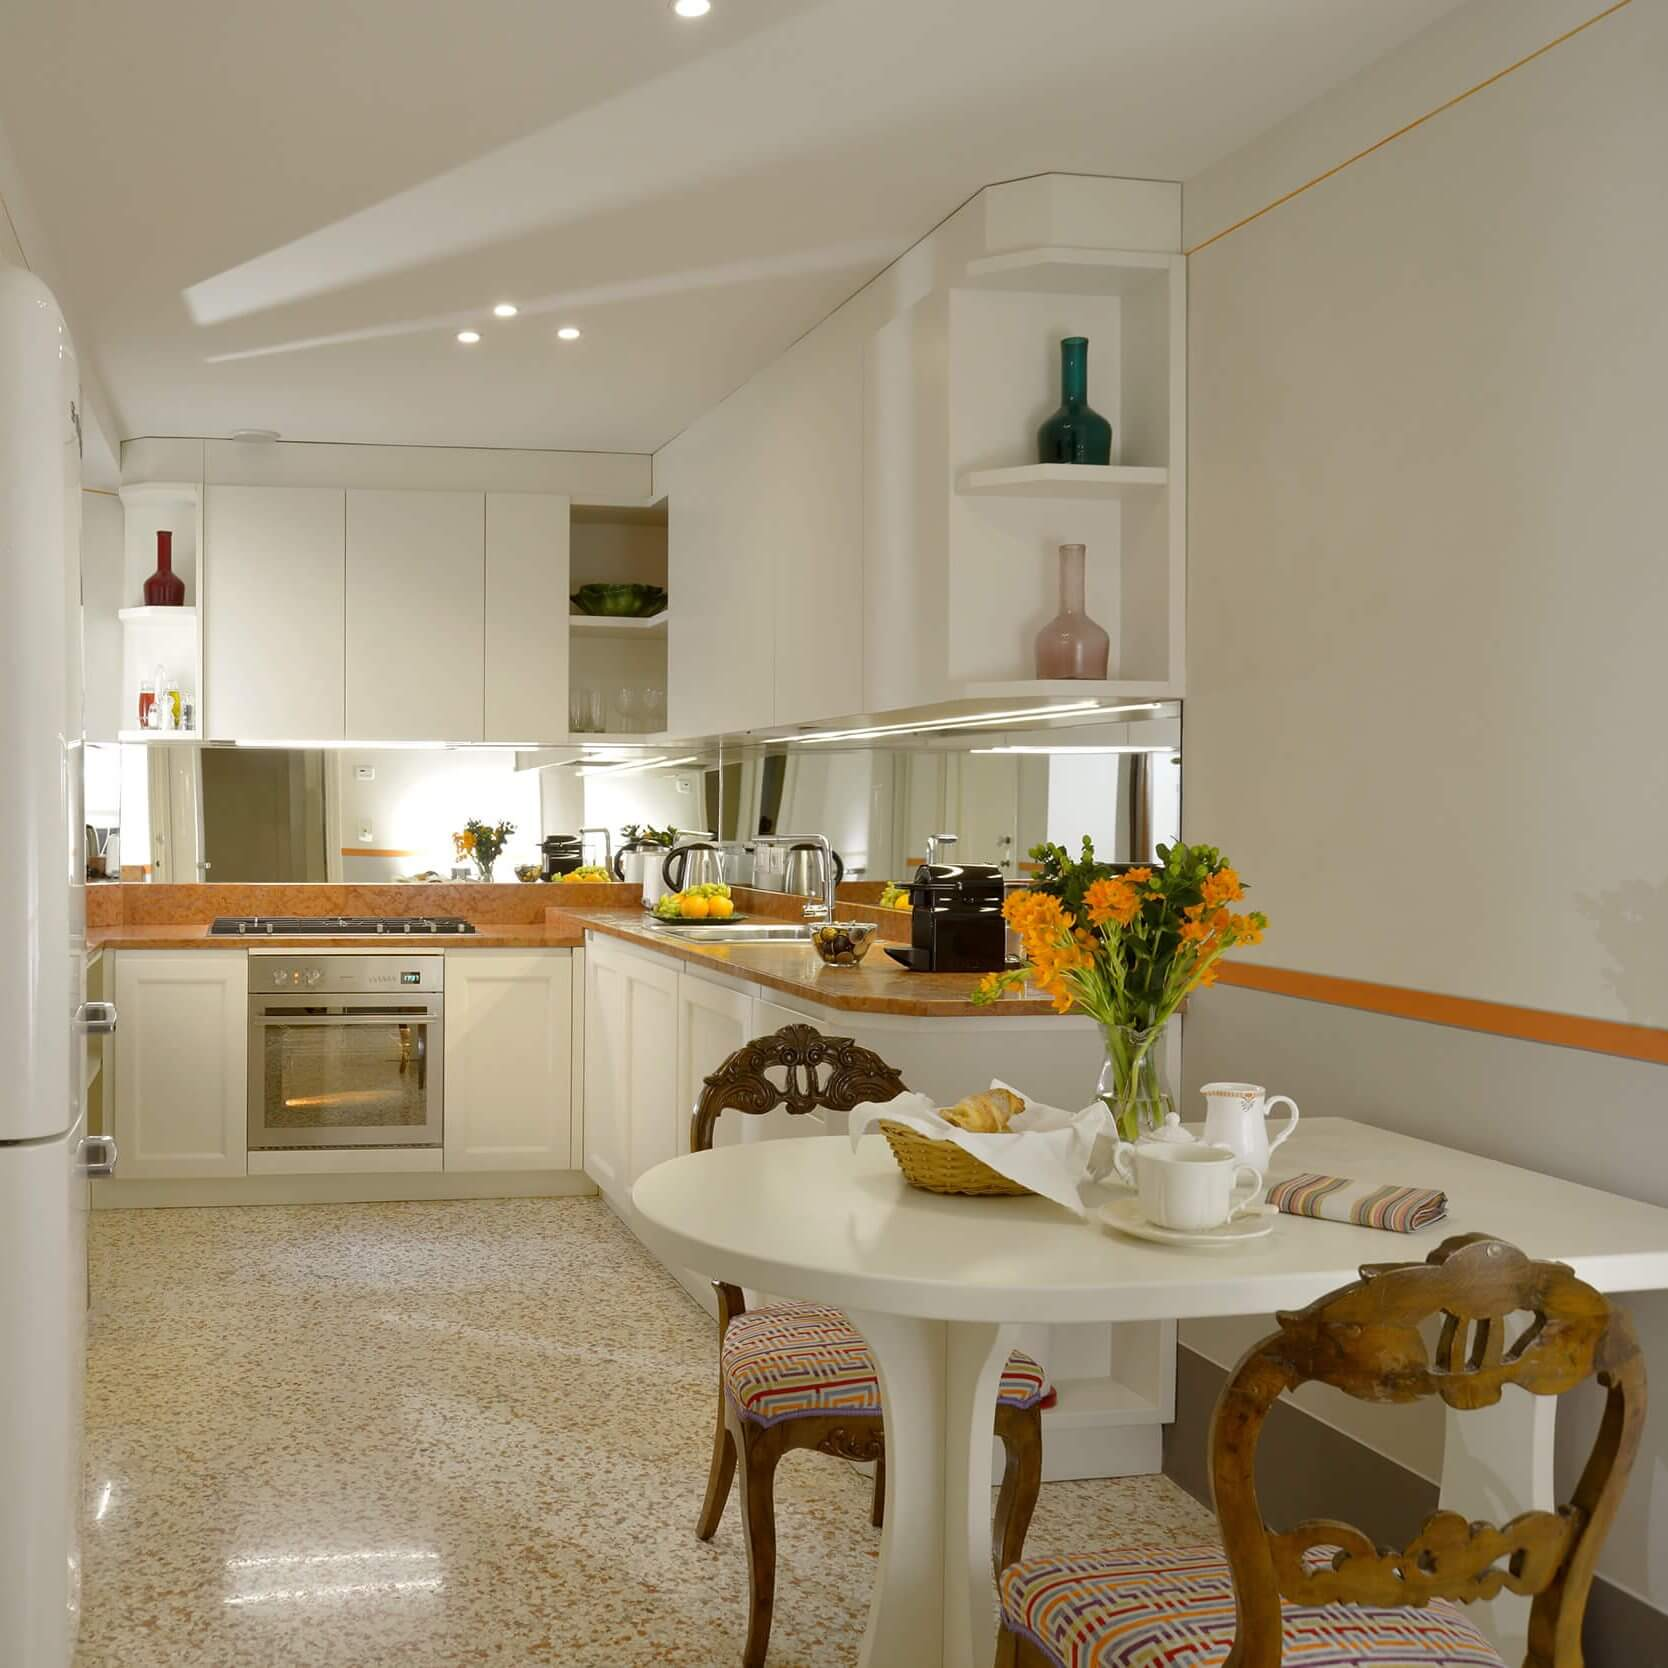 The spacious kitchen